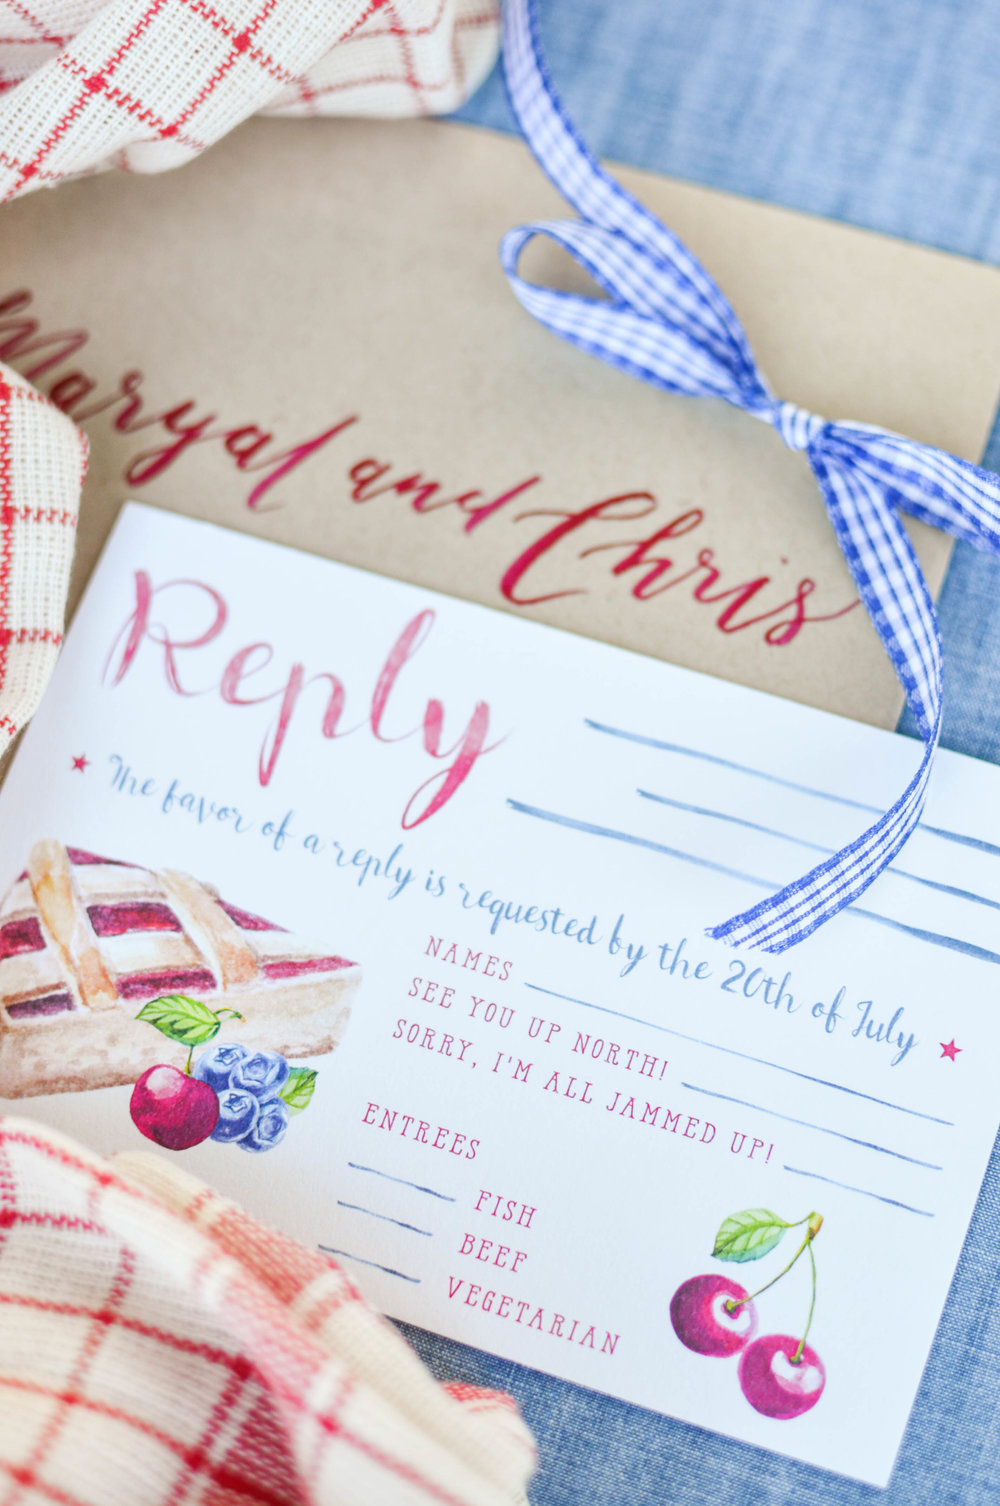 Summer Wedding Reply Card Ideas